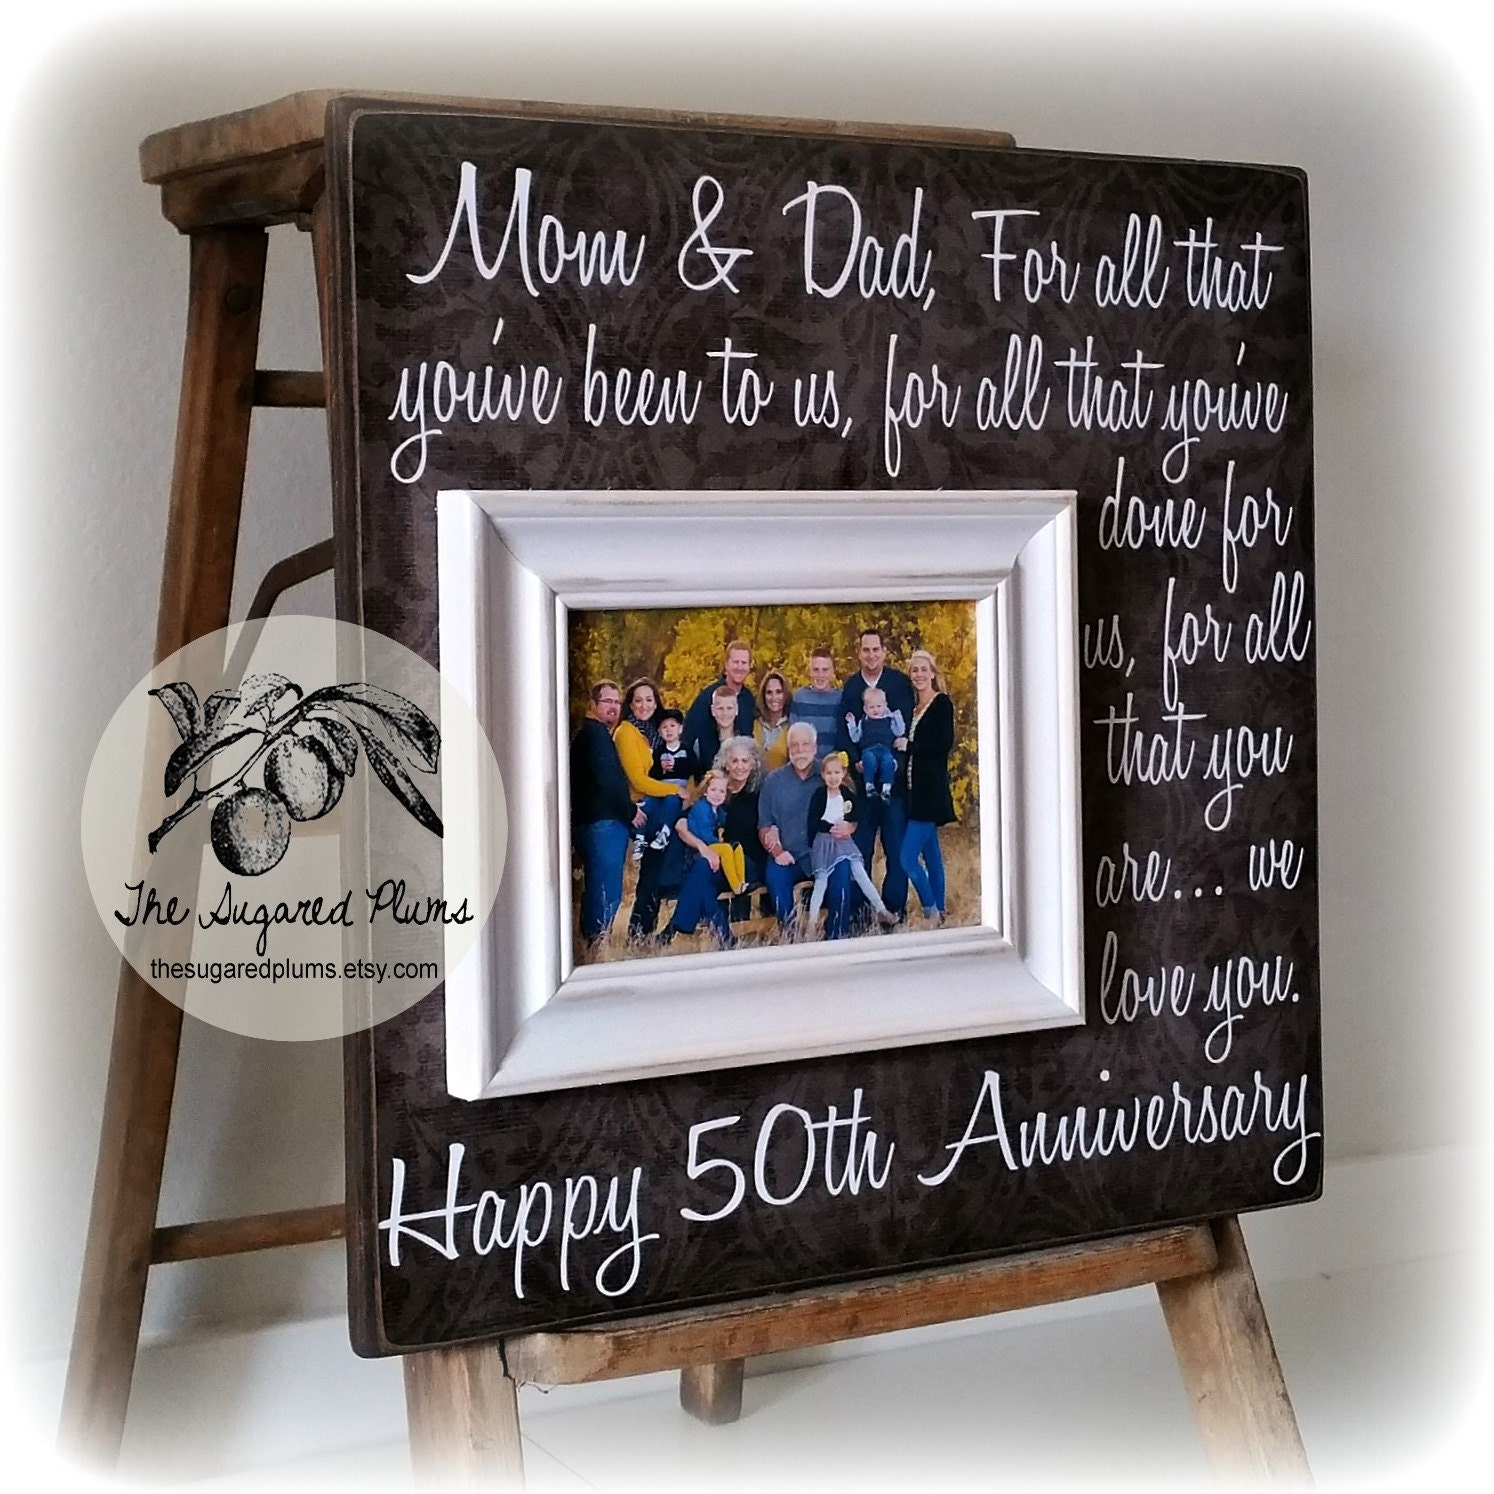 25th Wedding Anniversary Gift For Parents: Parents Anniversary Gift 50th Anniversary Gifts For All That